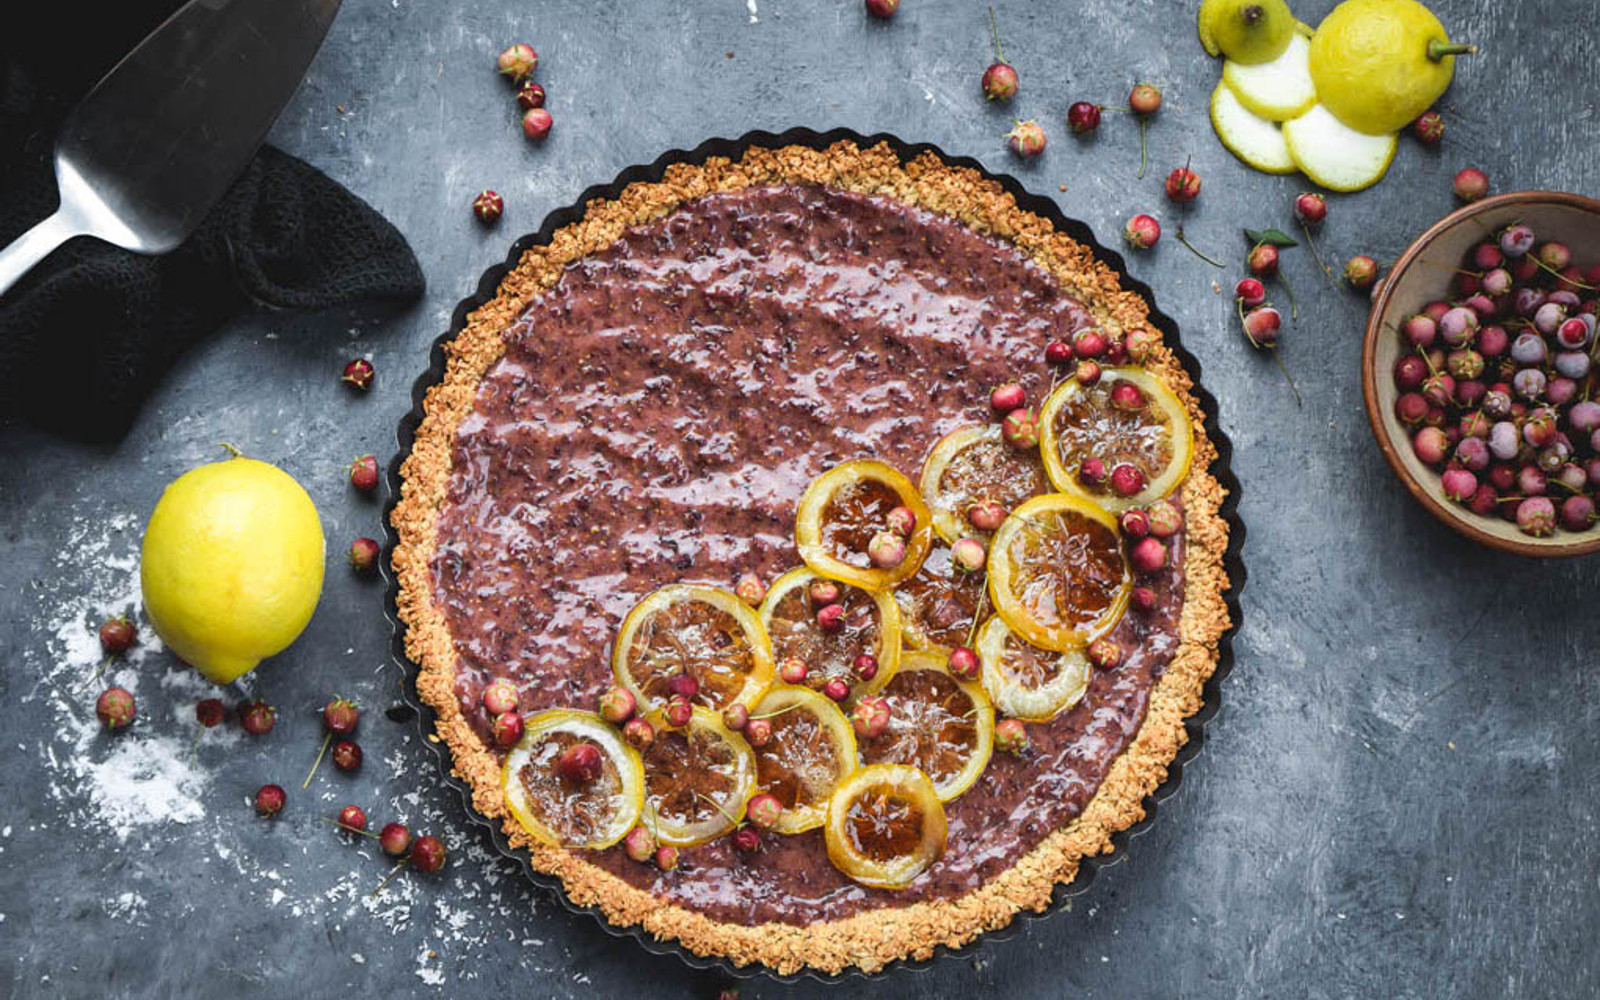 Guava and Candied Lemon Tart d